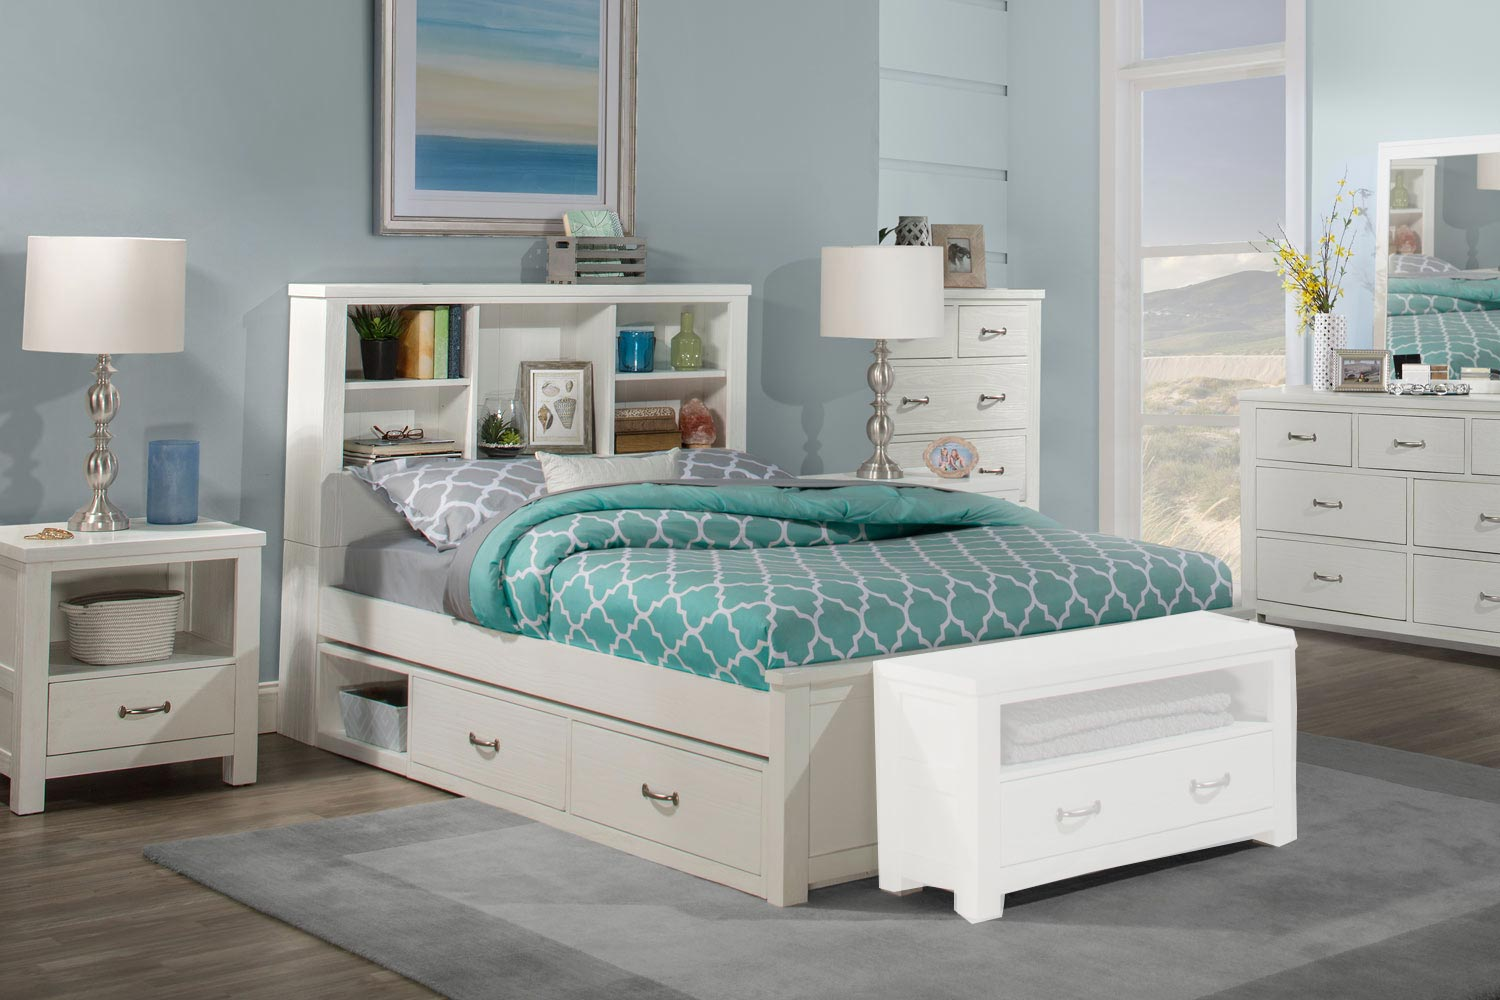 NE Kids Highlands Bookcase Bedroom Set with (2) Storage Units - White